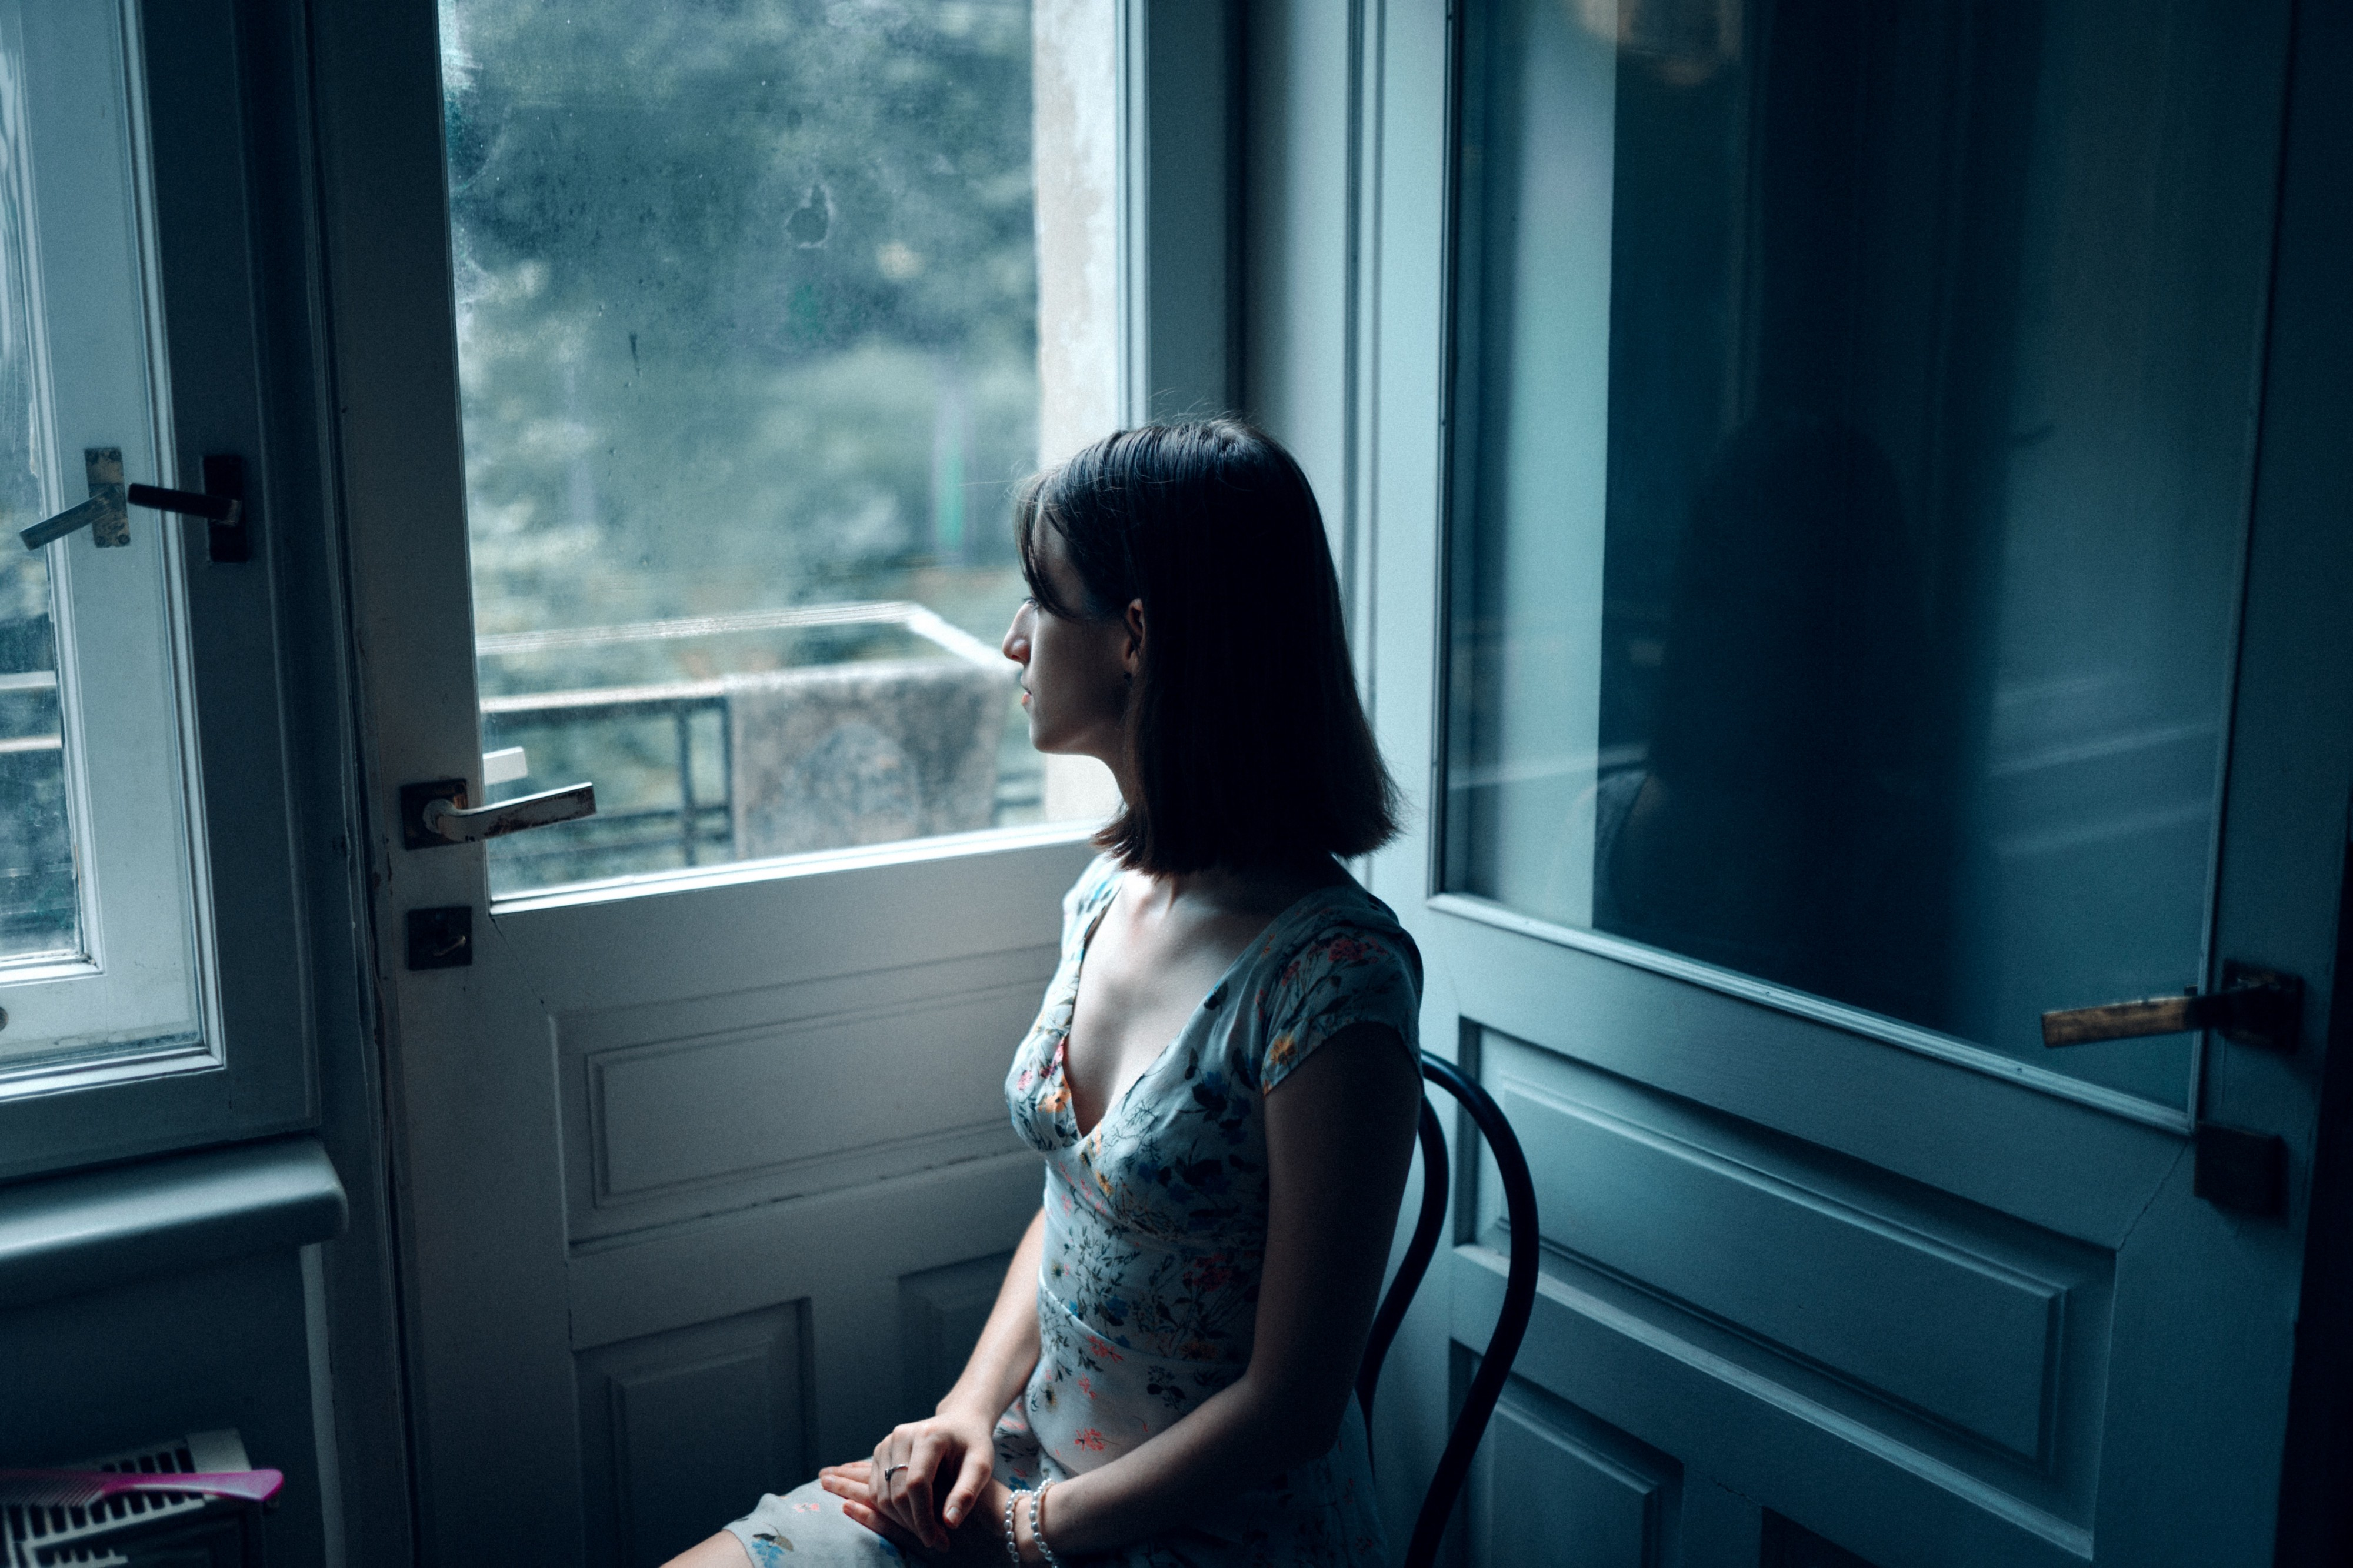 A woman sitting on a chair in solitude gazing out of a window.